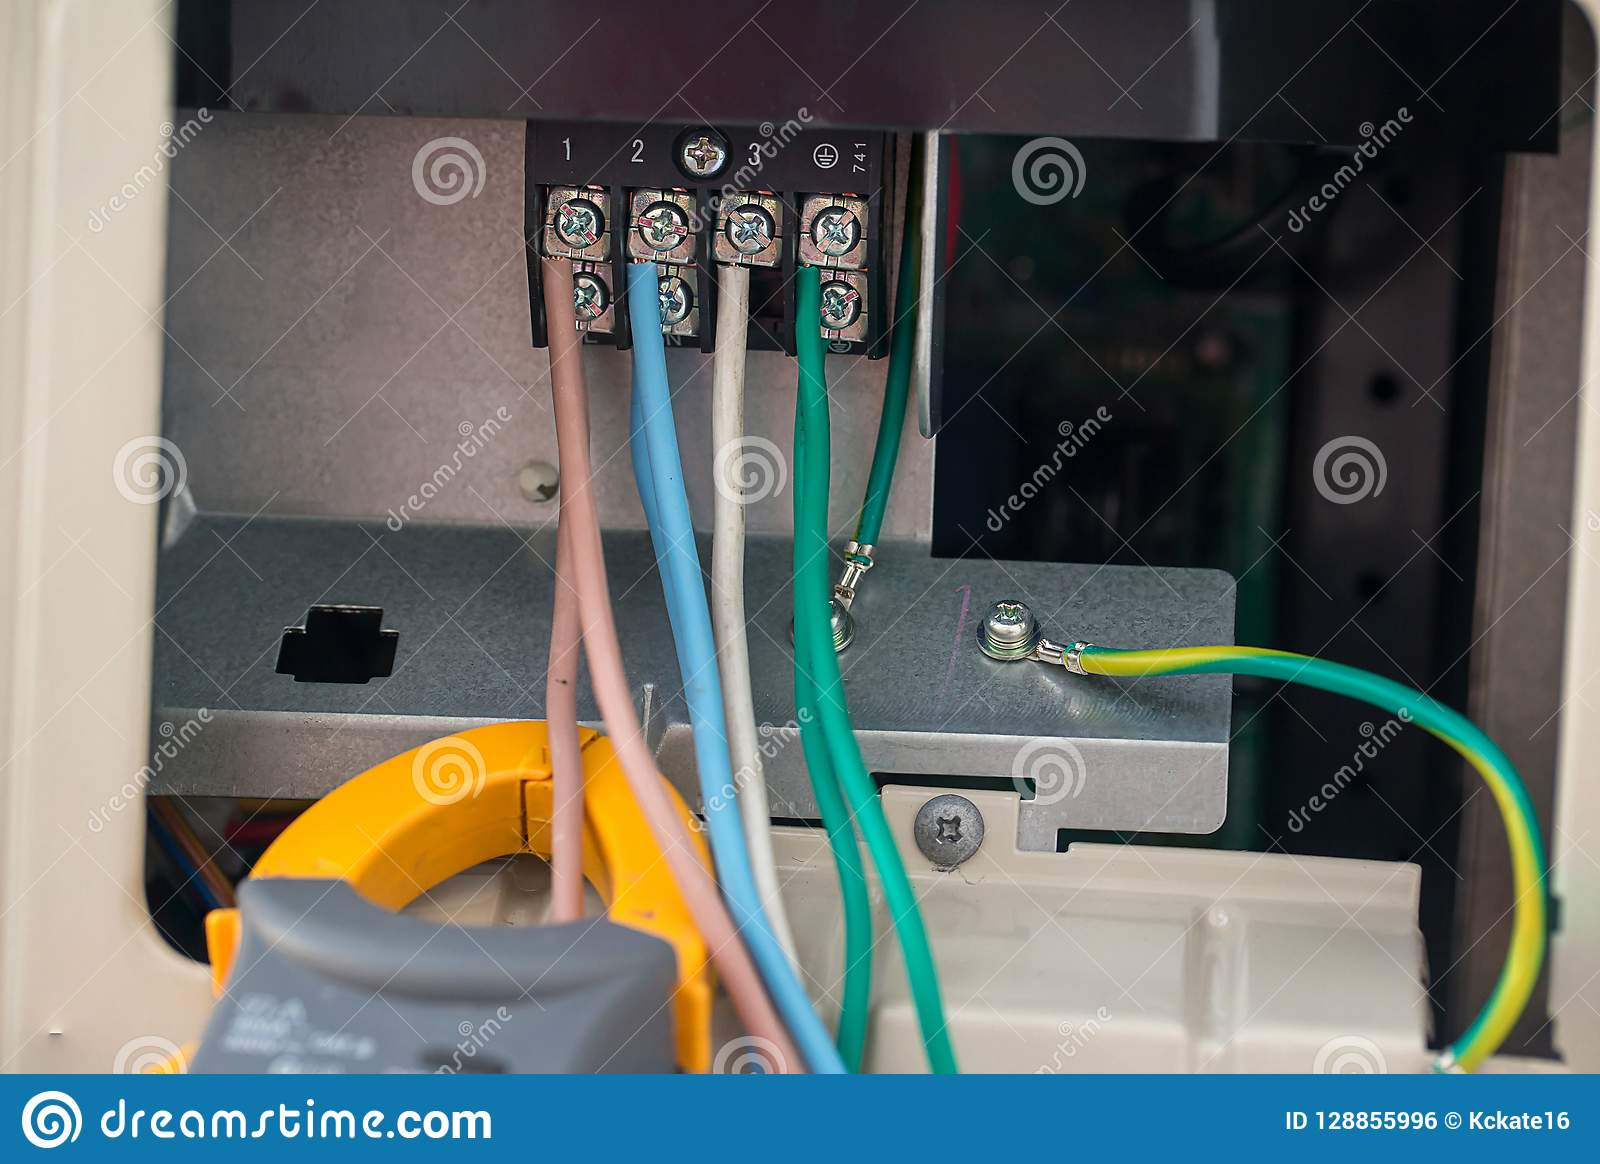 Cool Electrical Cables With Terminal Block Electrical Wires Is Wiring Digital Resources Timewpwclawcorpcom